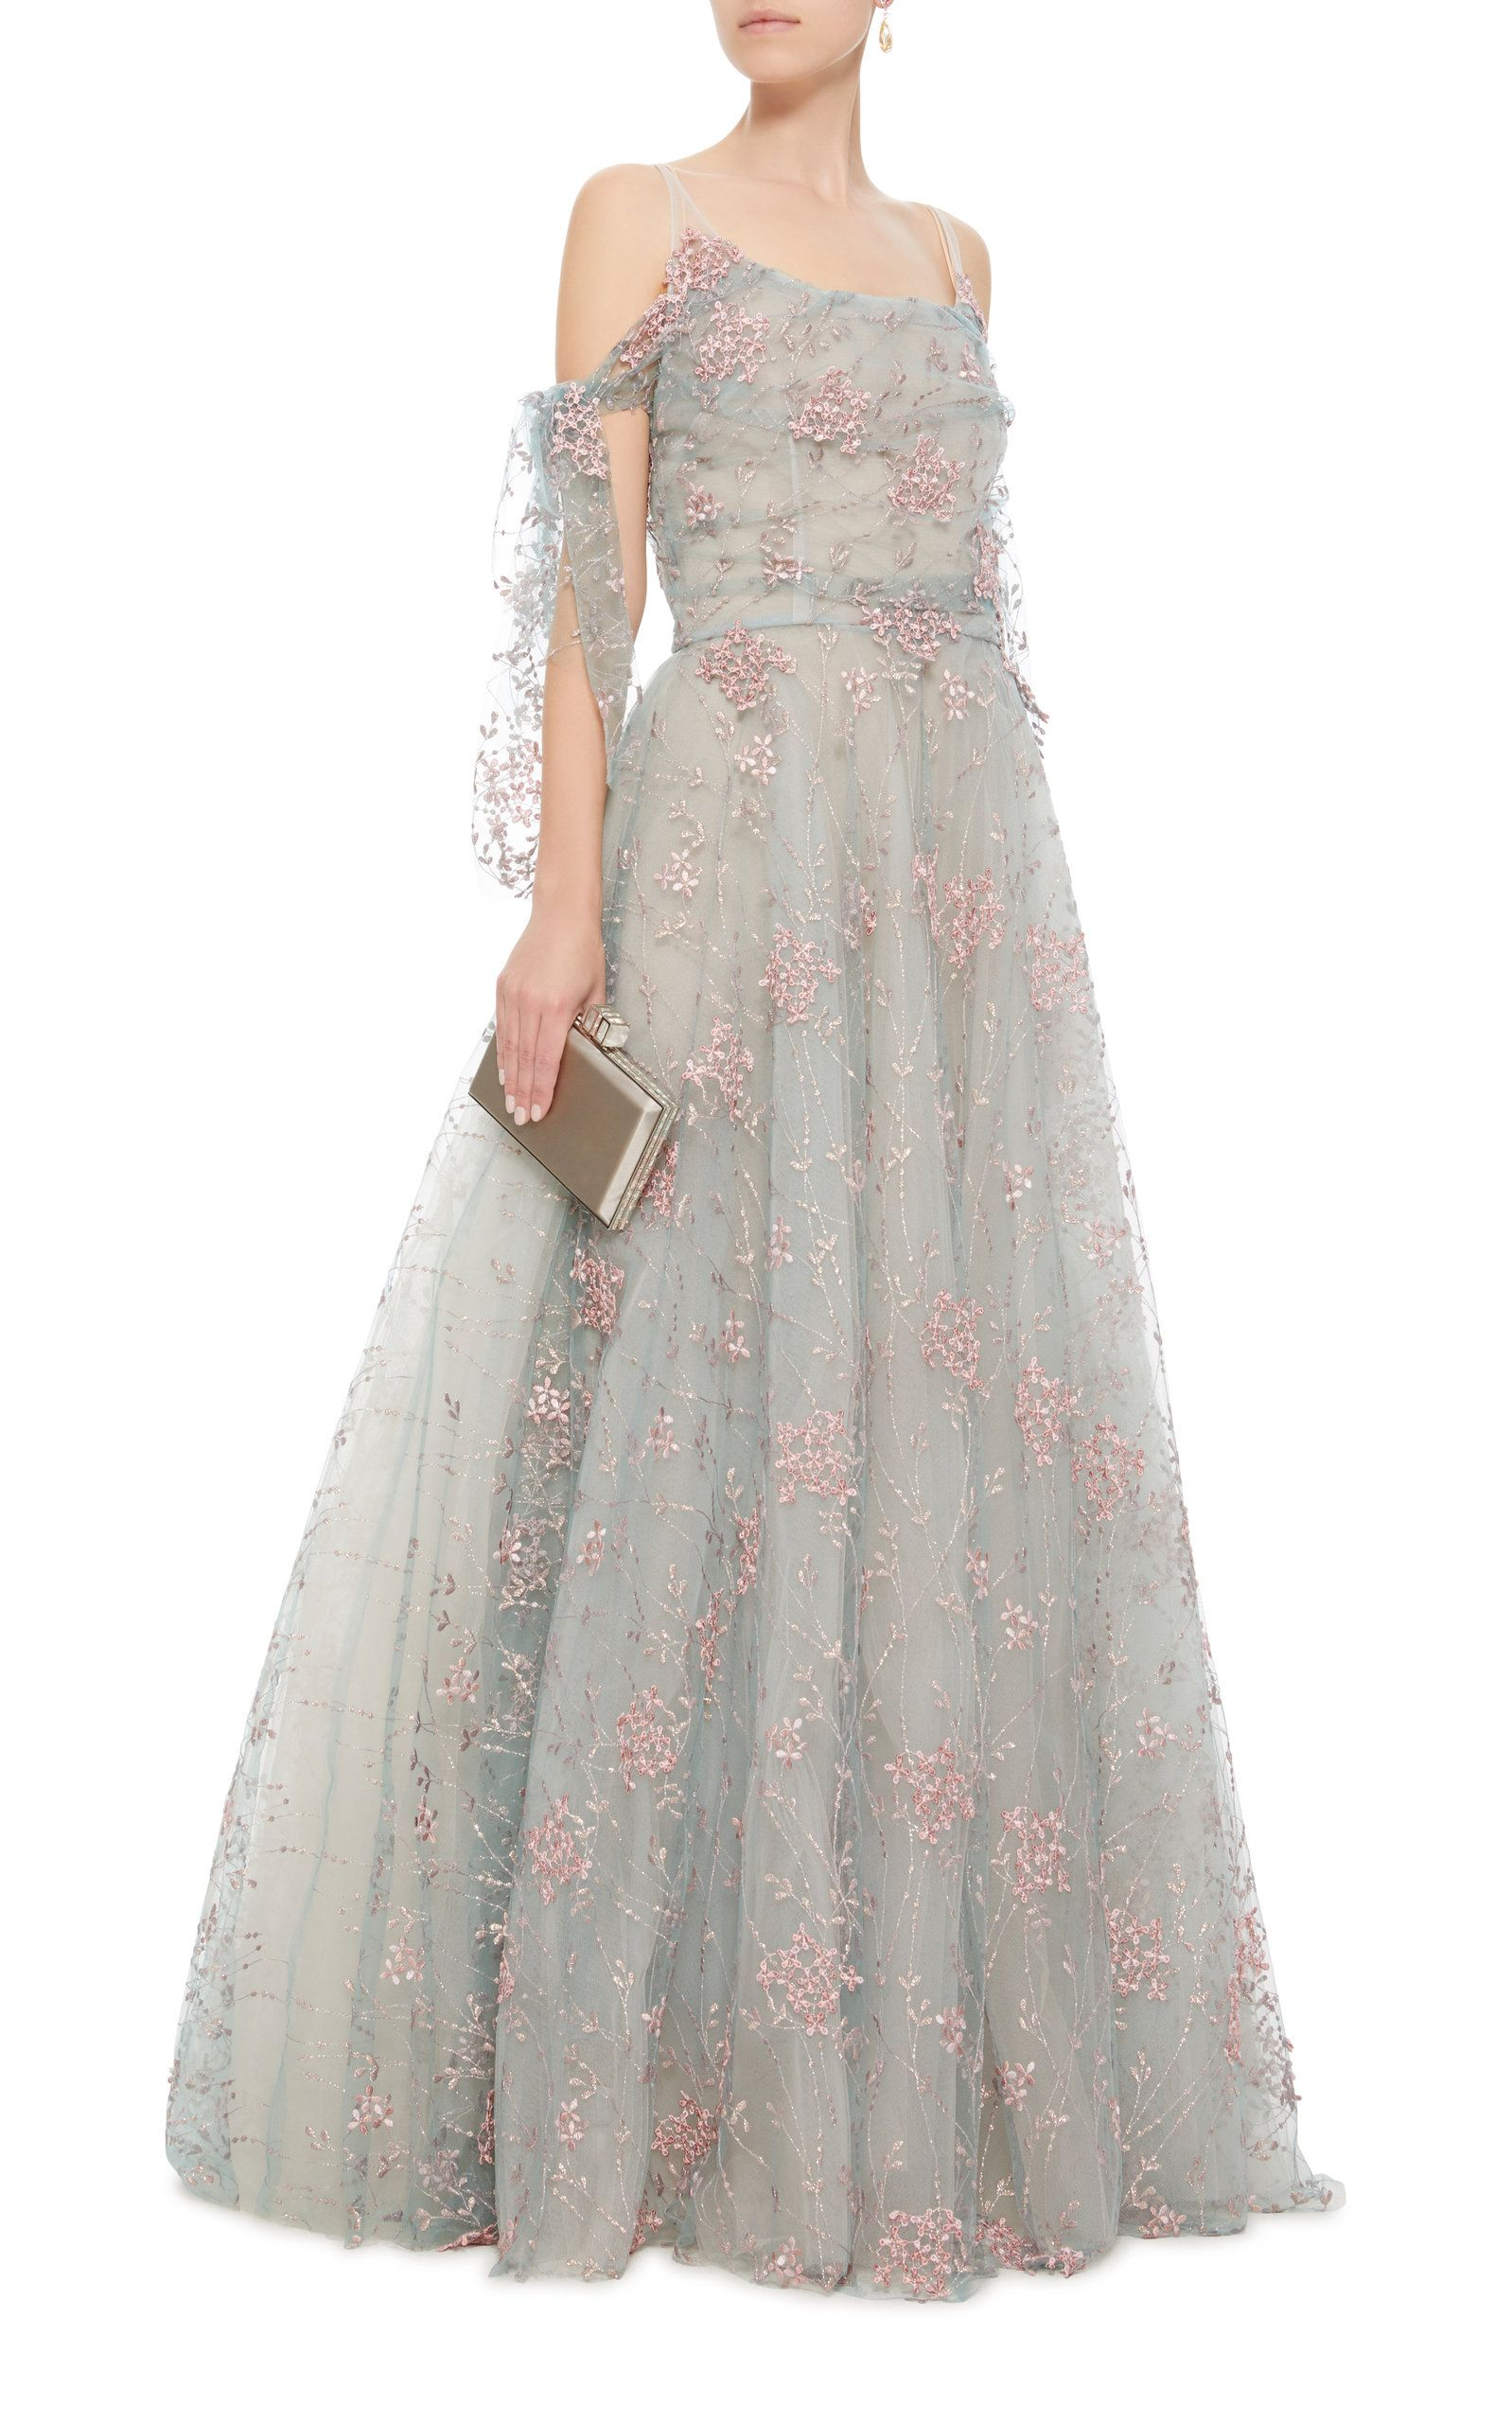 0a5c7eb850 Tulle Embroidered Floral Ball Gown   Gowns   Dresses, Gowns, Luisa ...